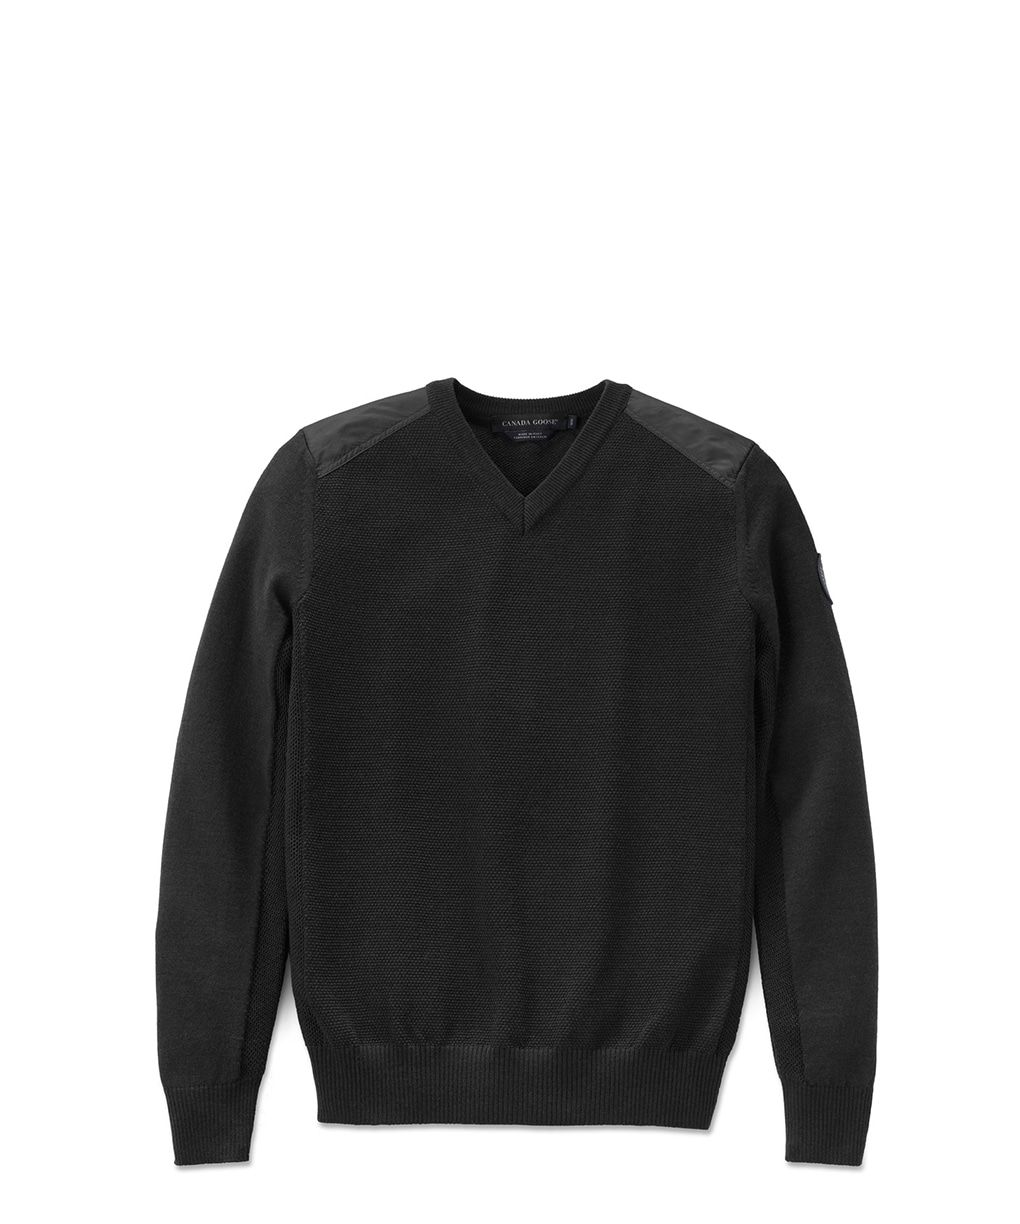 MCLEOD V NECK SWEATER